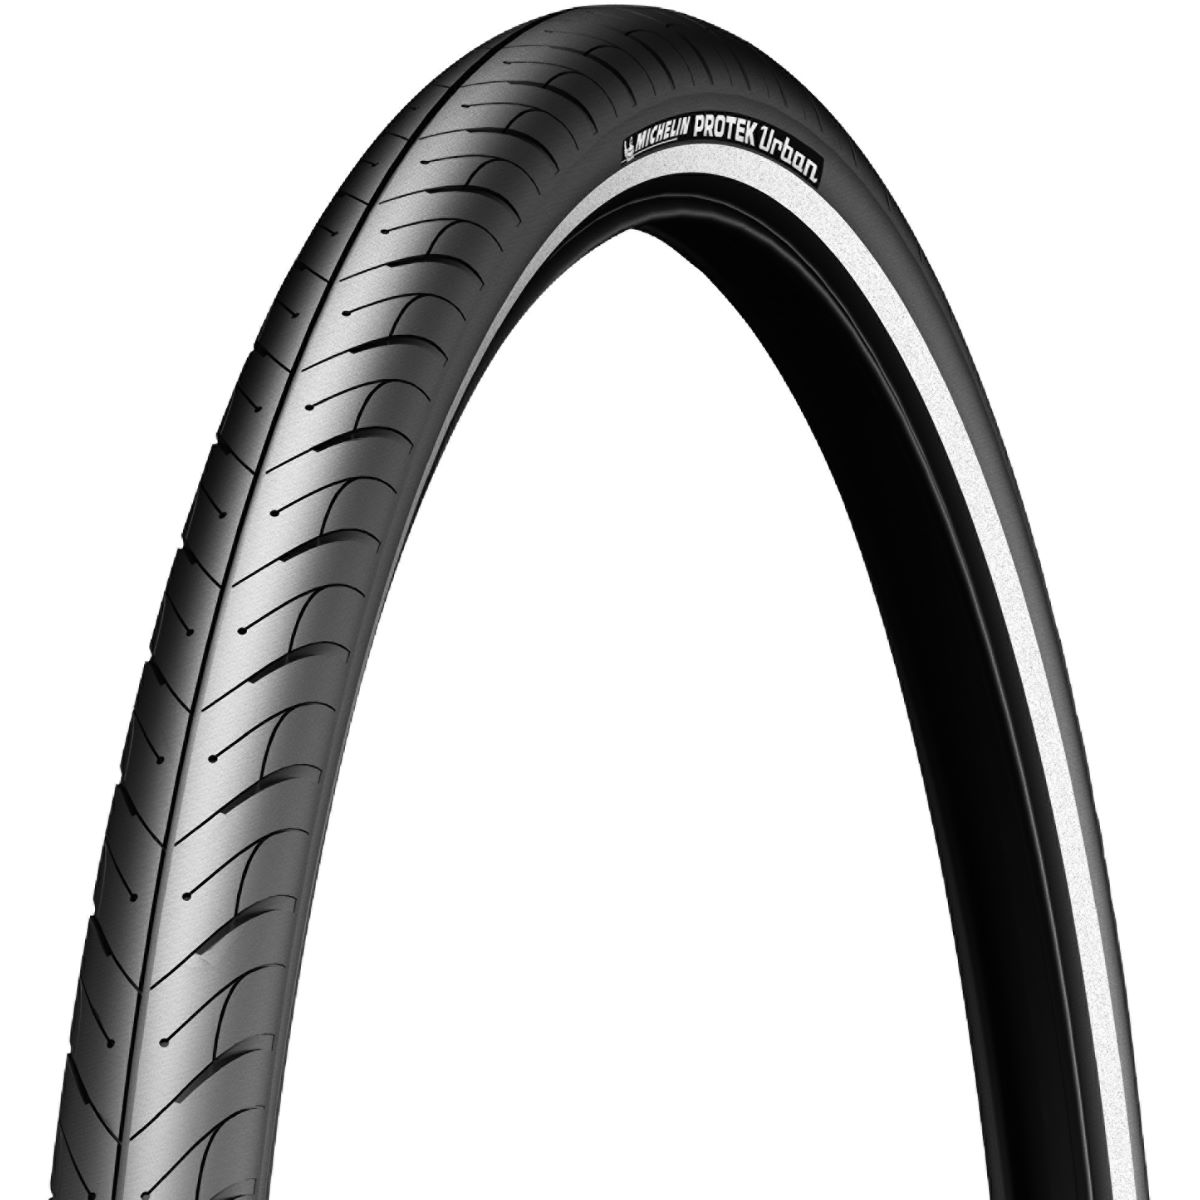 Pneu Michelin Protek Urban City - 700c 38c Wire Bead Noir